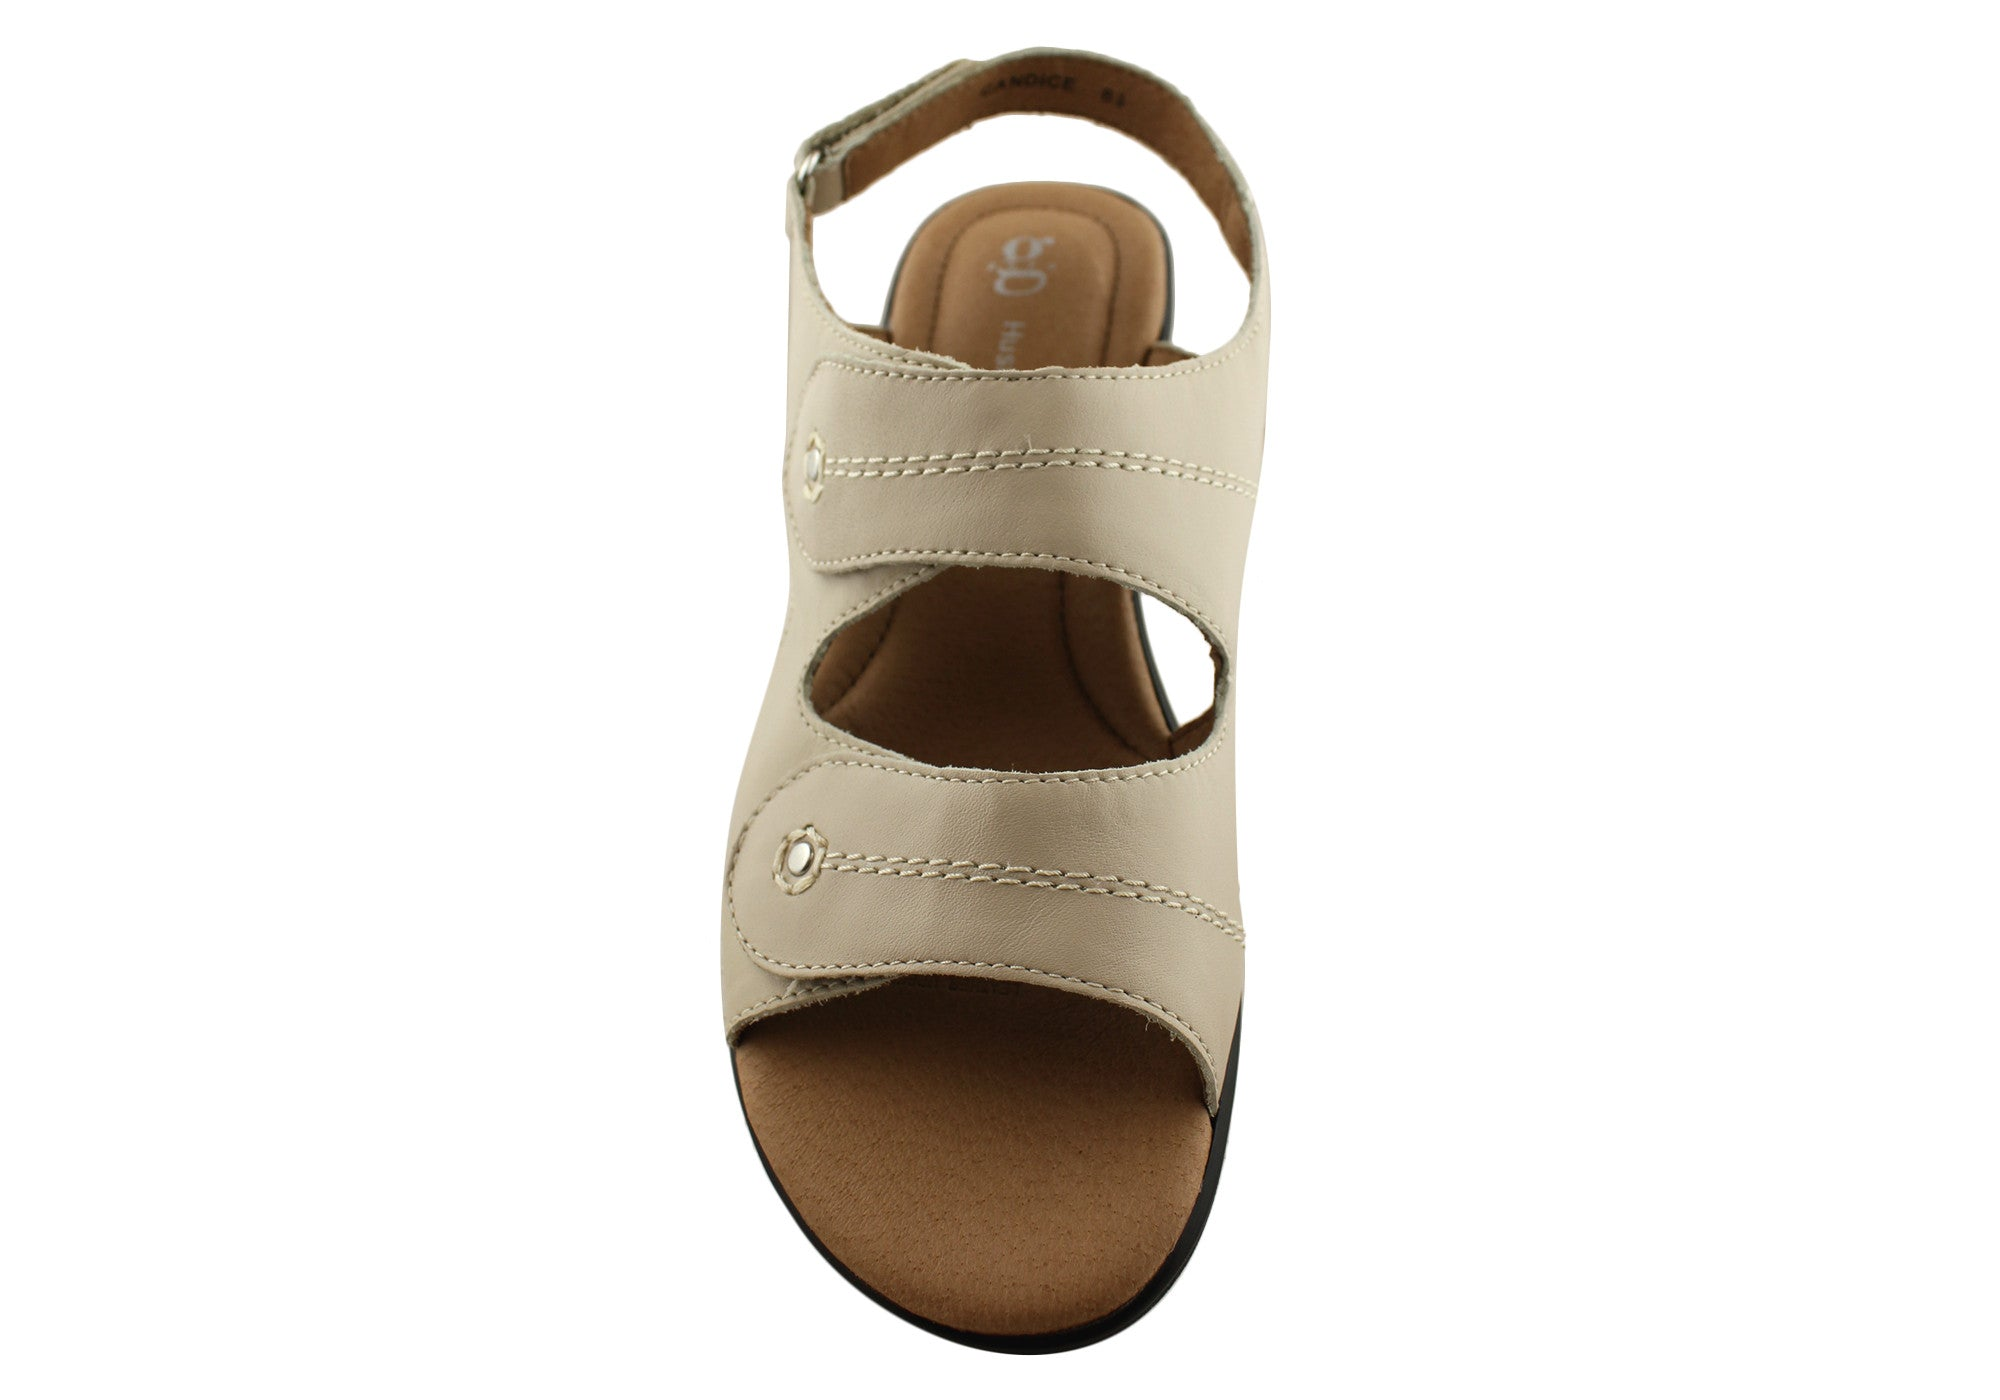 Hush Puppies Candice Womens Adjustable Sandals